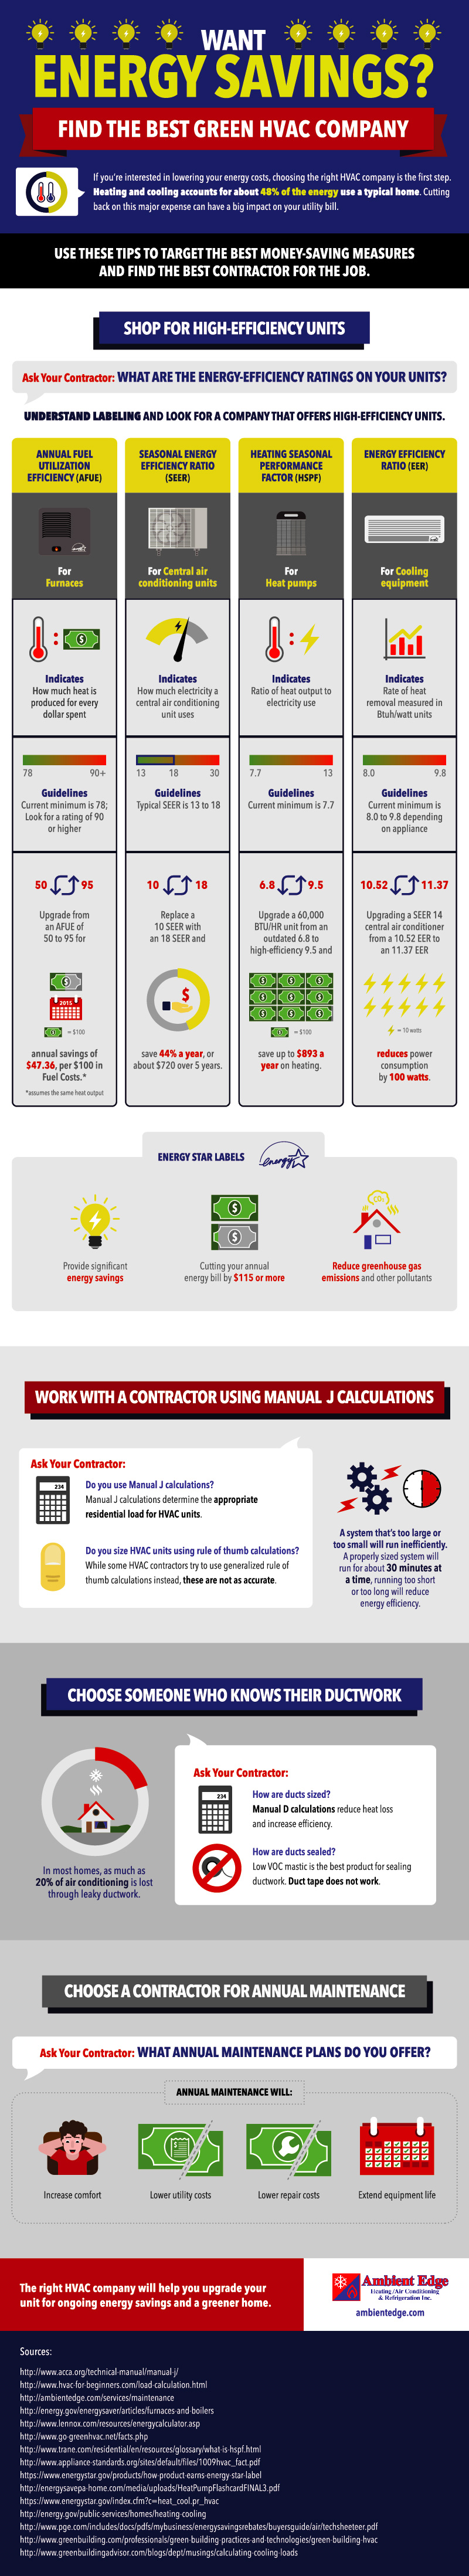 energy savings and Green HVAC contractor infographic